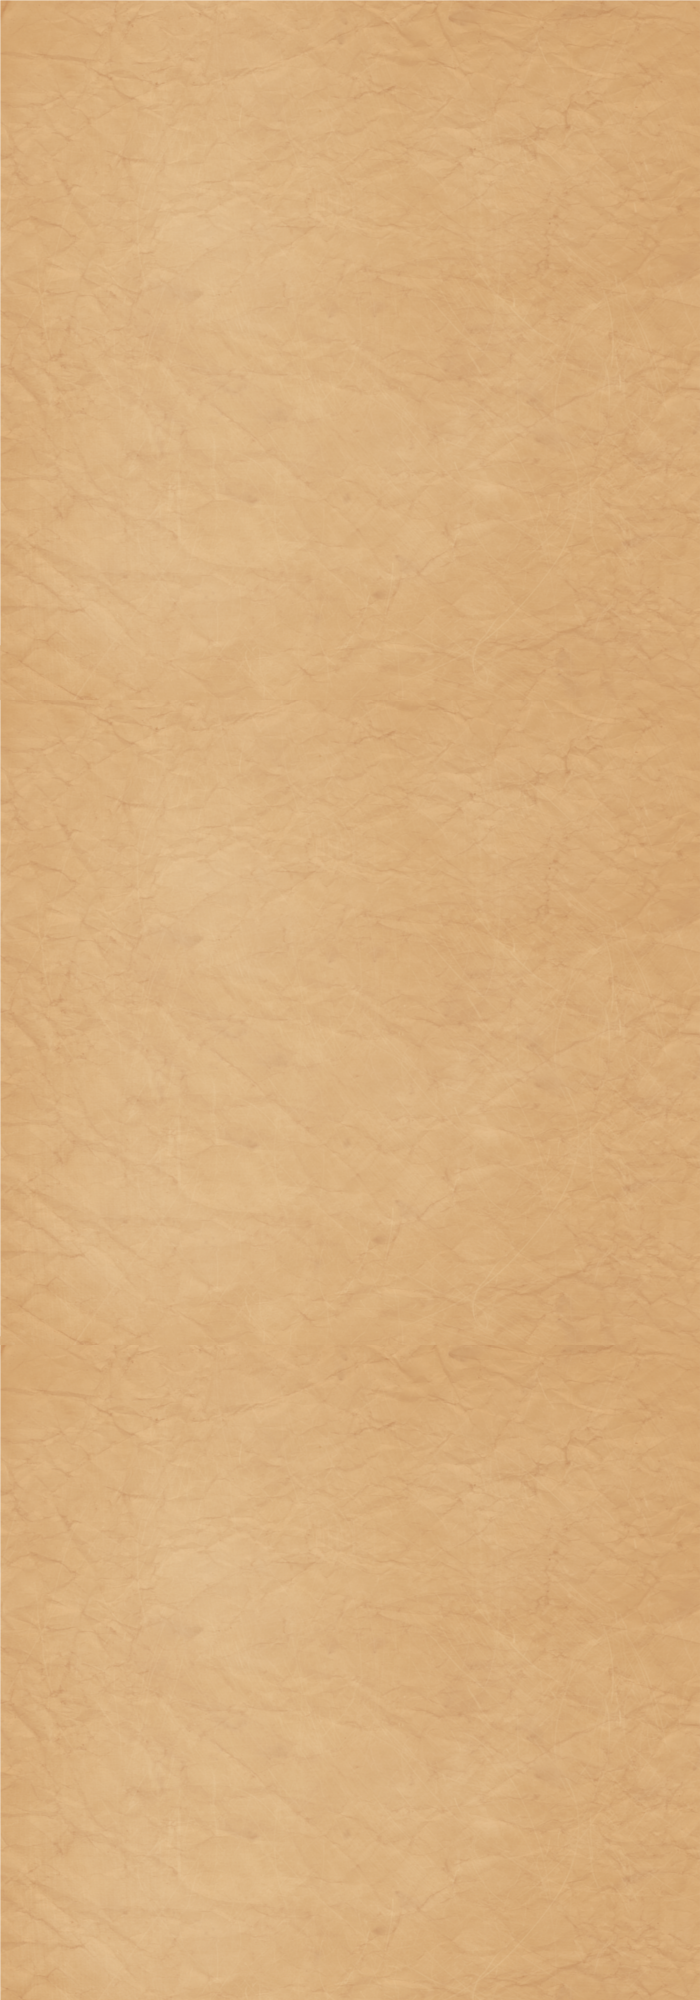 Light Brown Custom Box Background by SimplySilent on ...